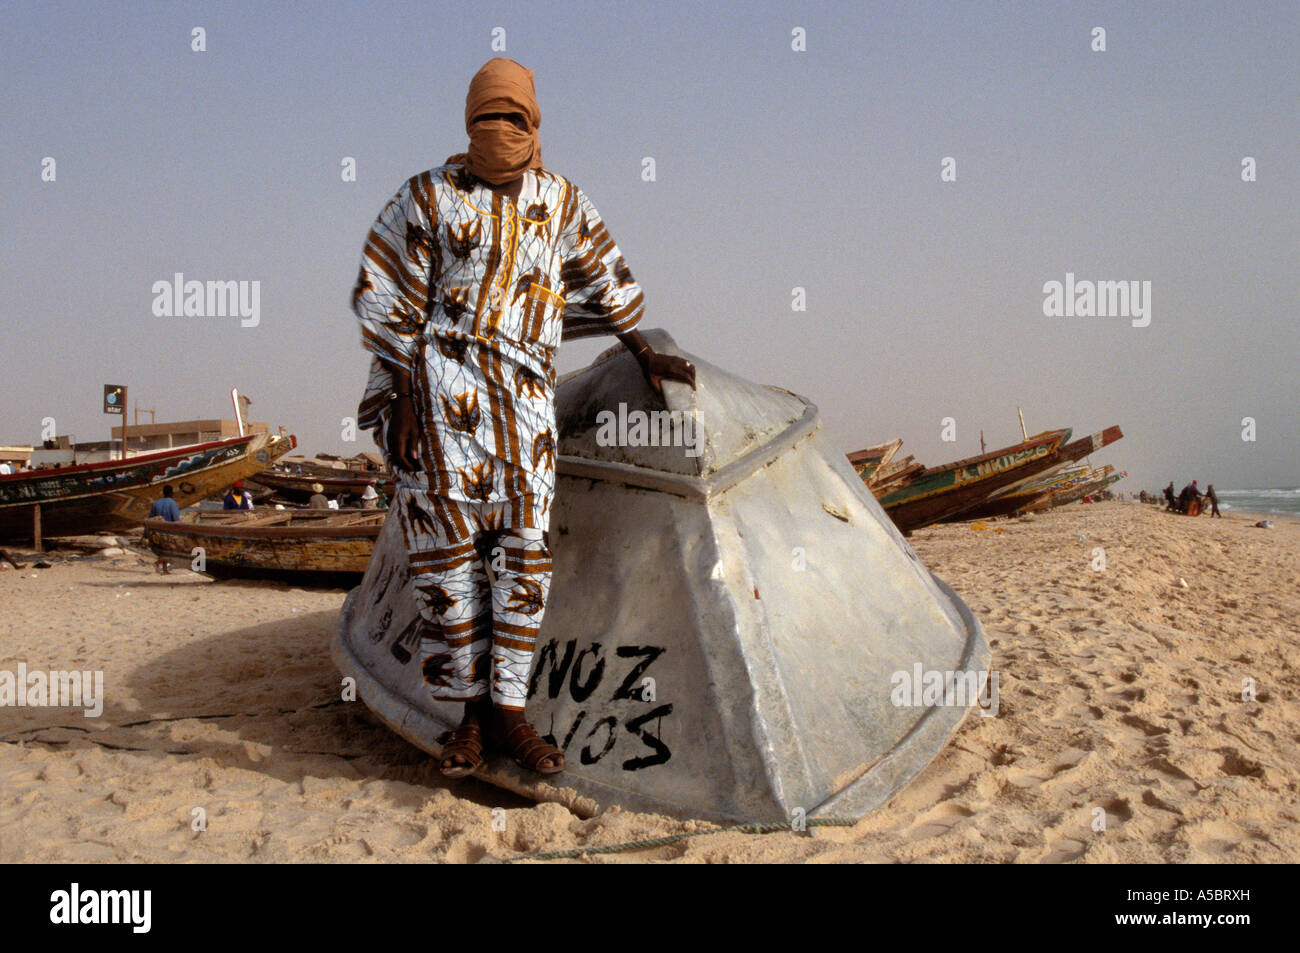 Mauritanian fisherman in traditional clothing leaning against upturned fishing boat on beach, portrait, Nouakchott, - Stock Image